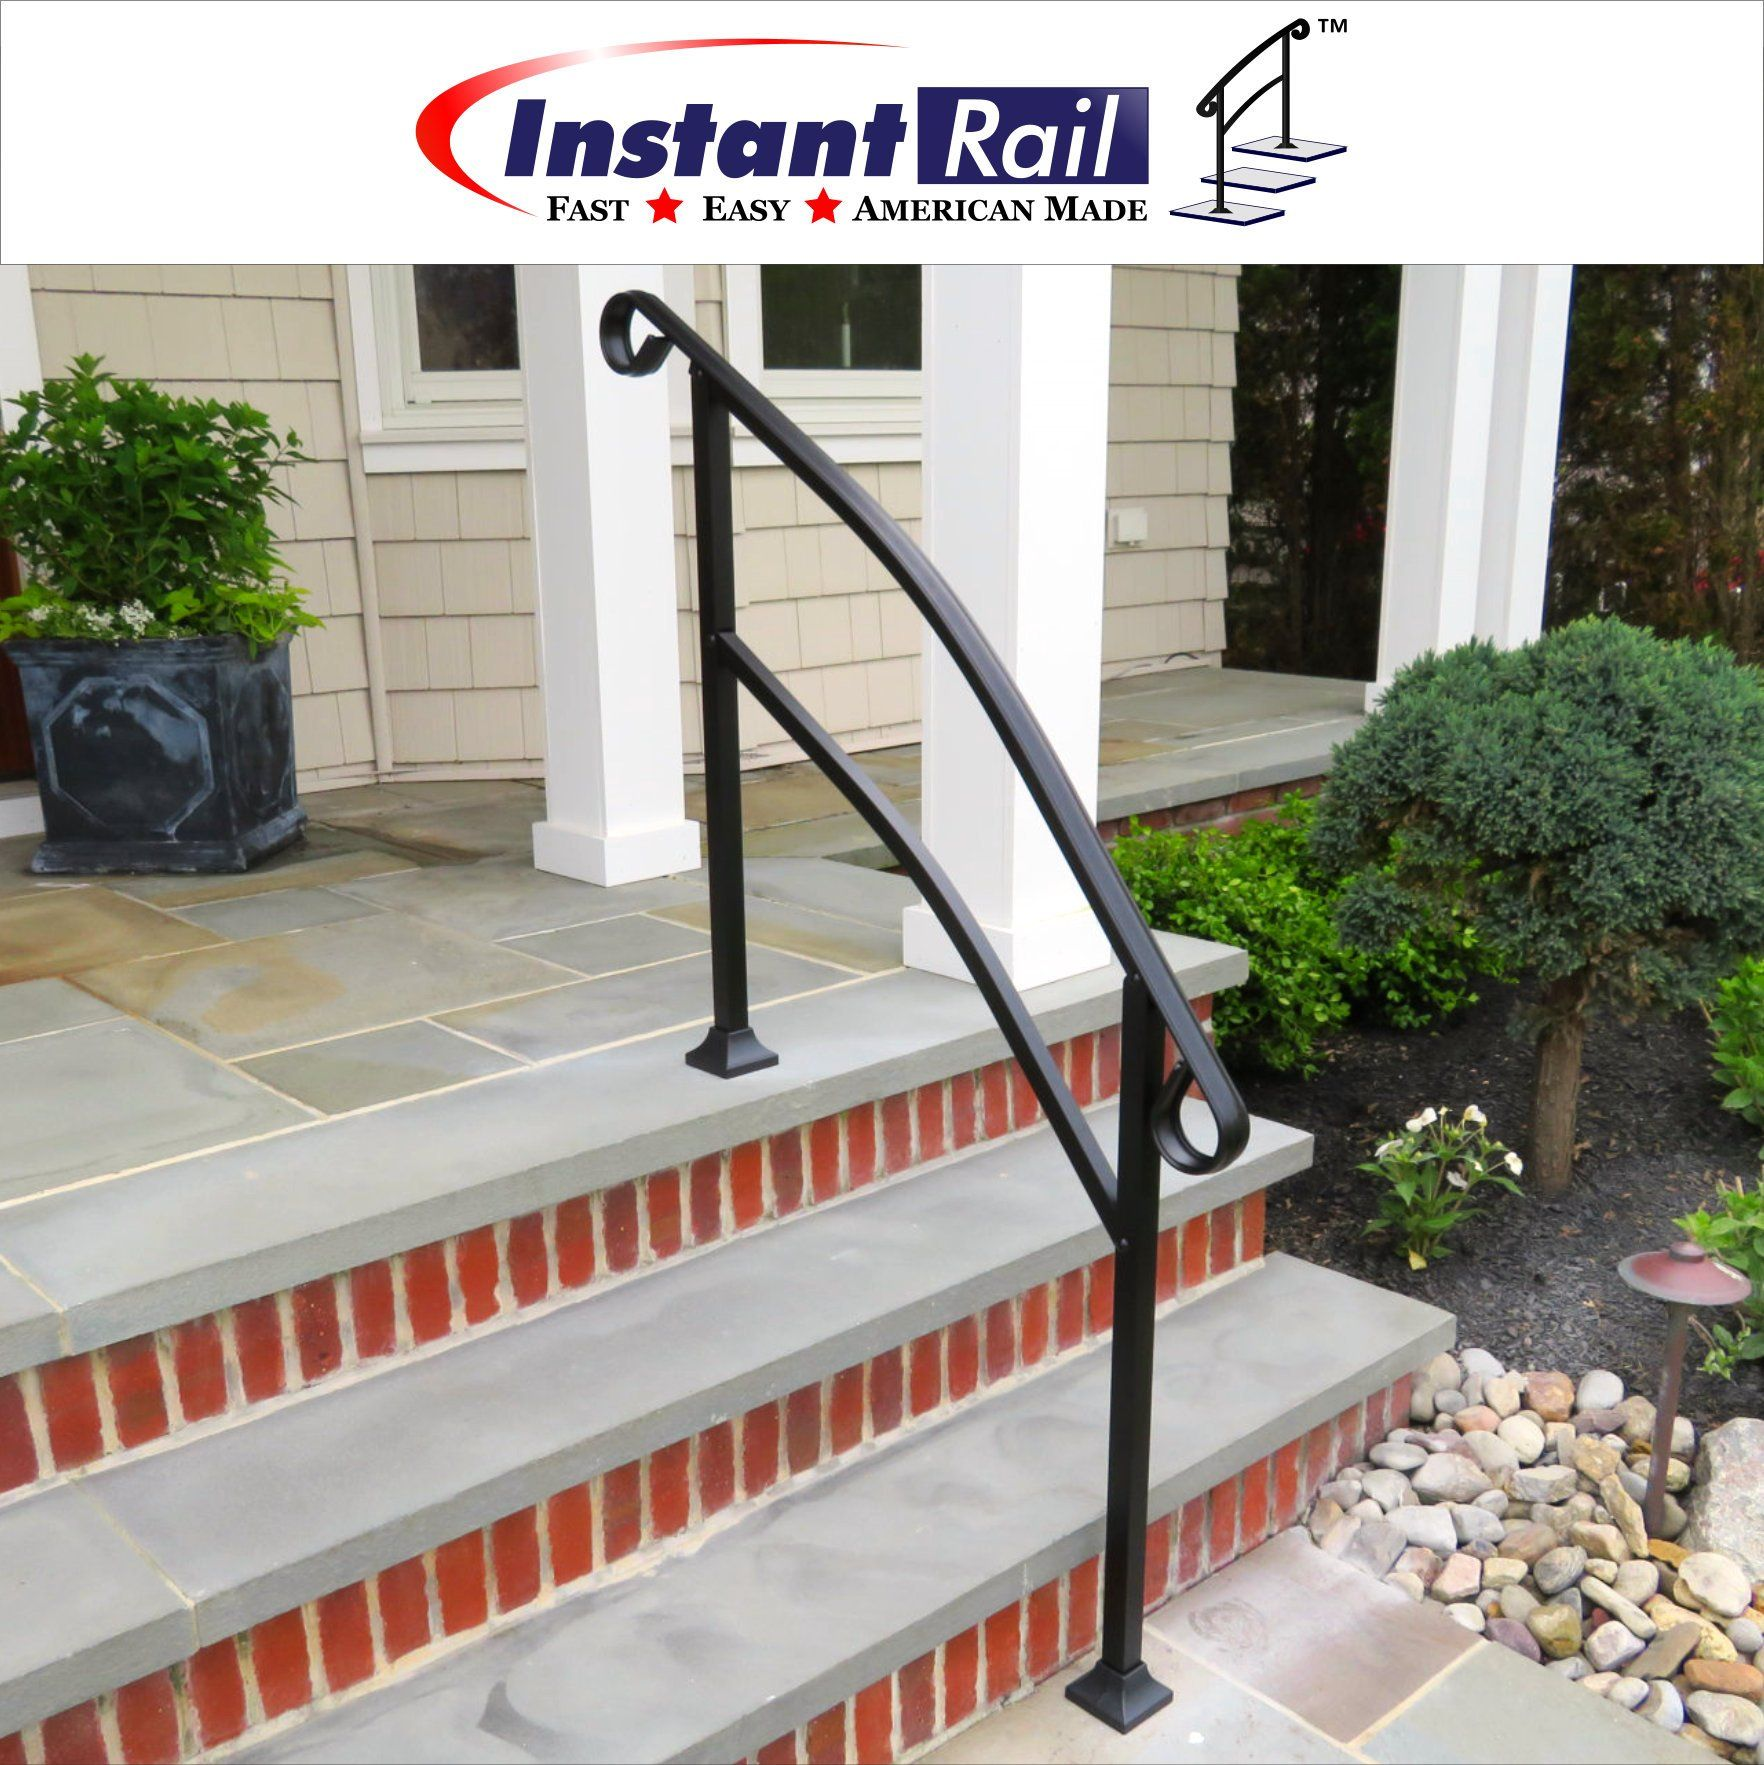 Best Instantrail 4 Step Adjustable Handrail For Concrete Steps 400 x 300